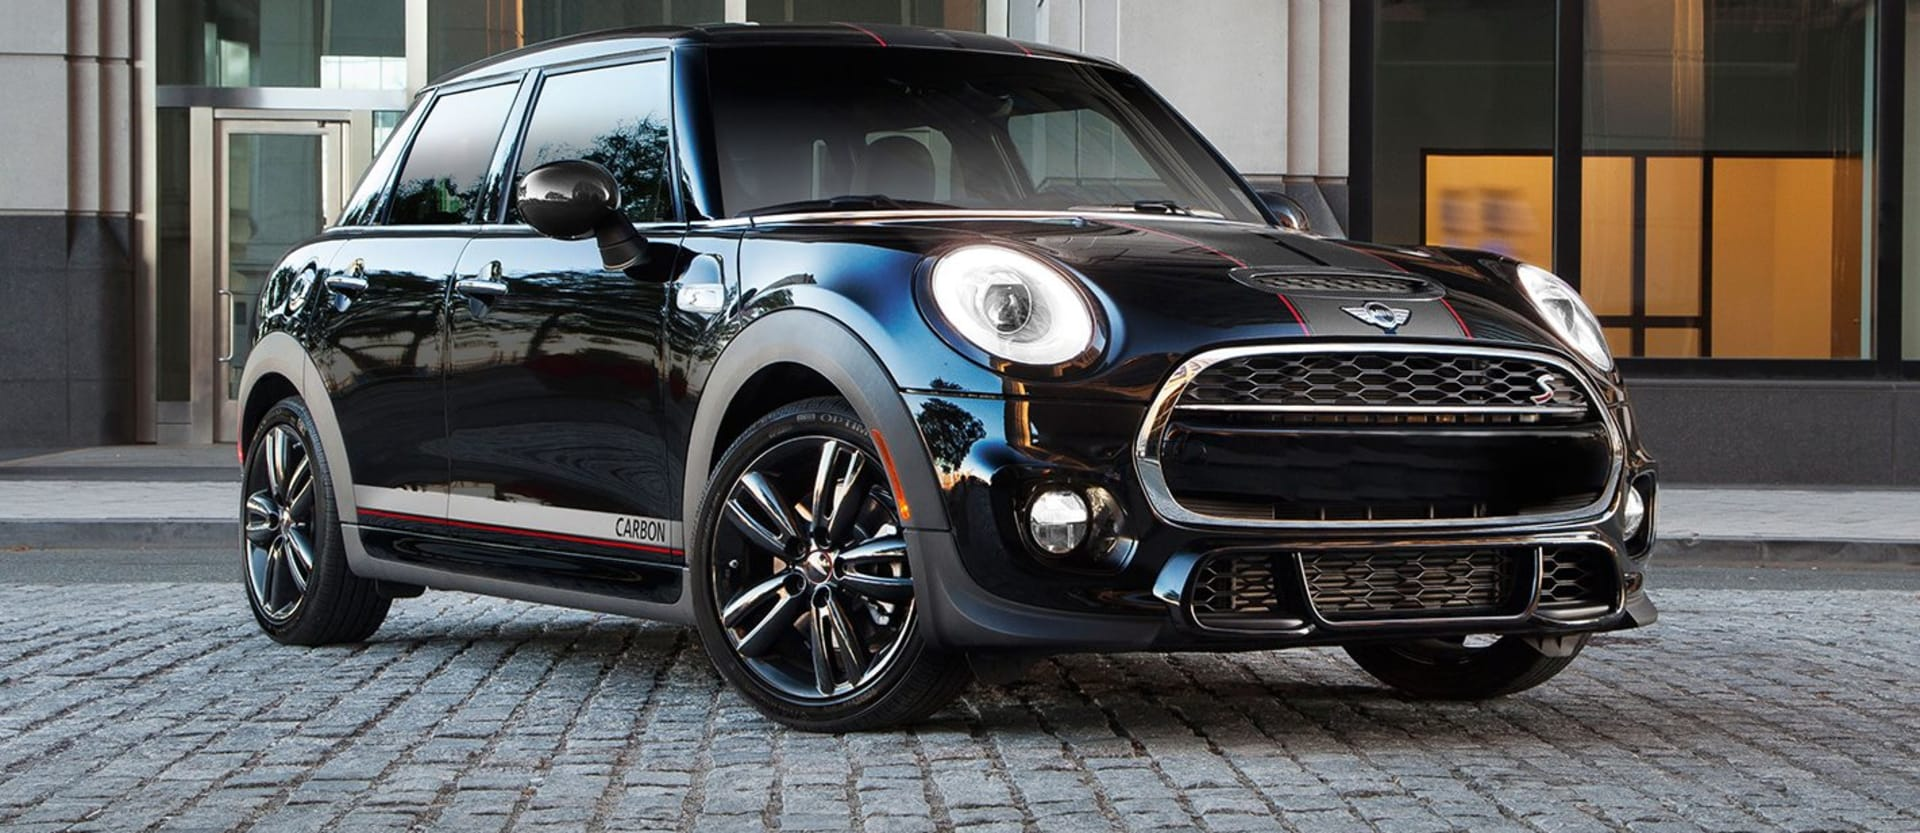 Mini JCW Carbon Front Side Jpg